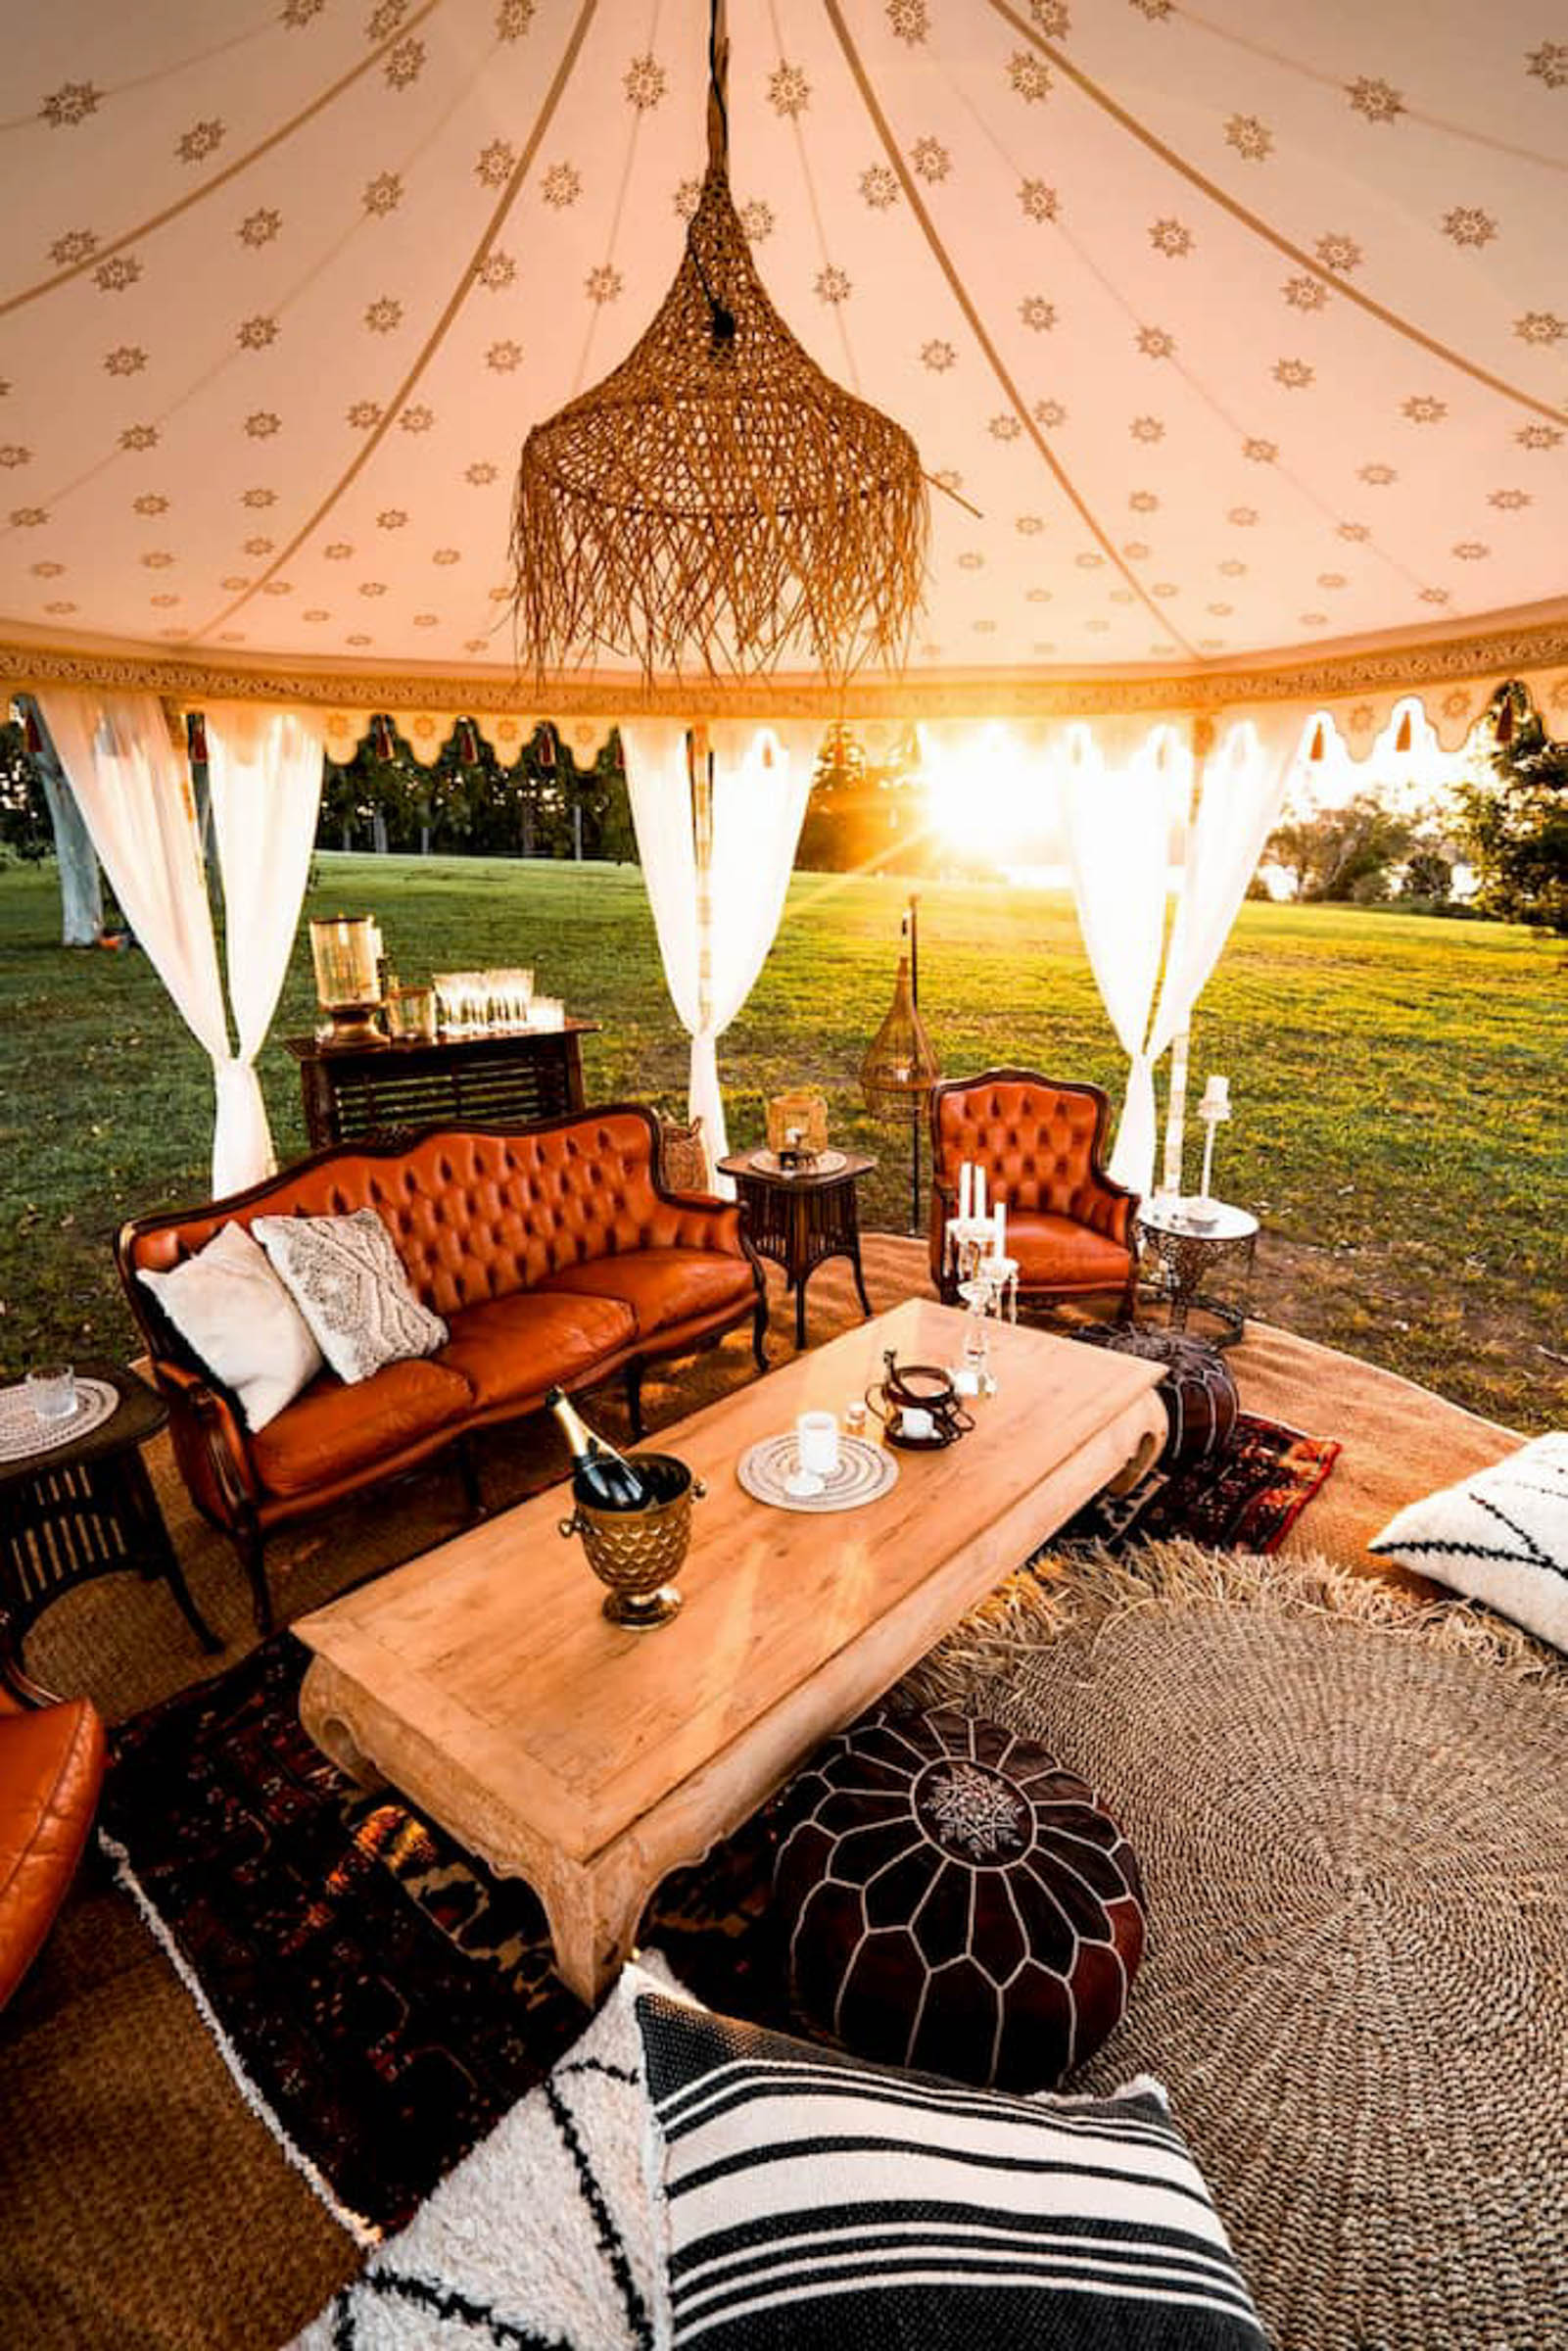 Beautiful outdoor boho luxury tent with baroque furniture